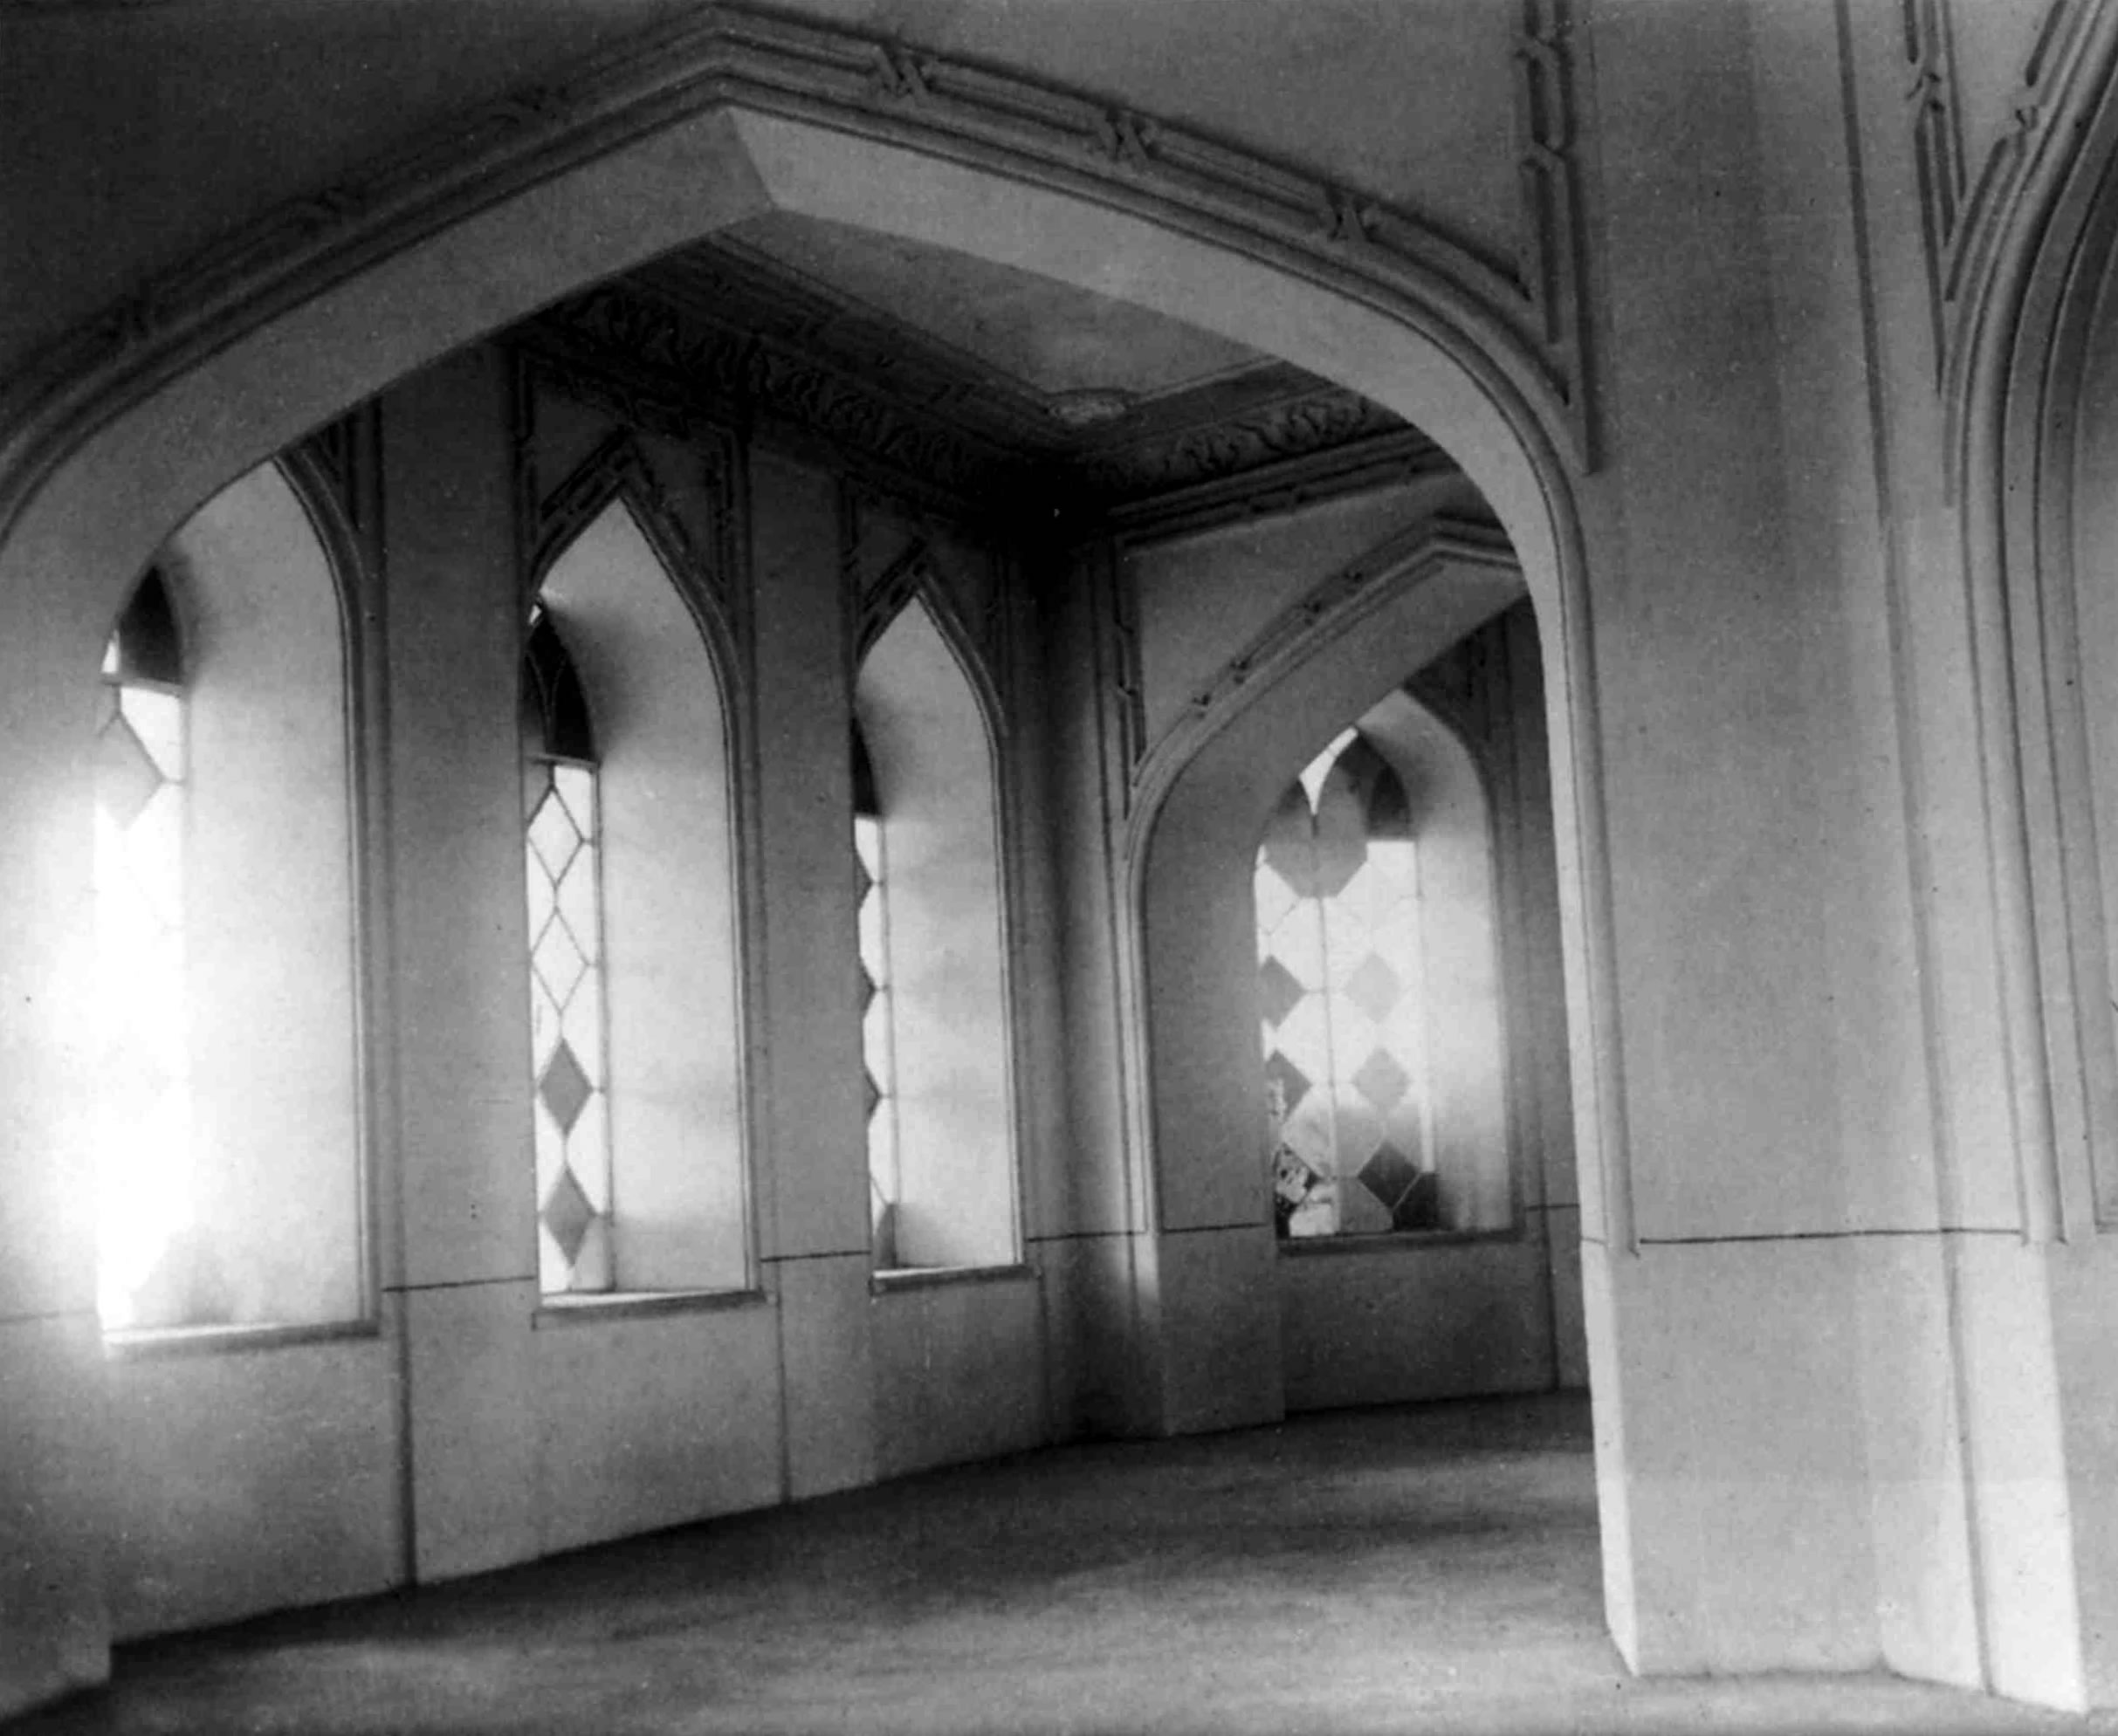 Interior of the House of Worship